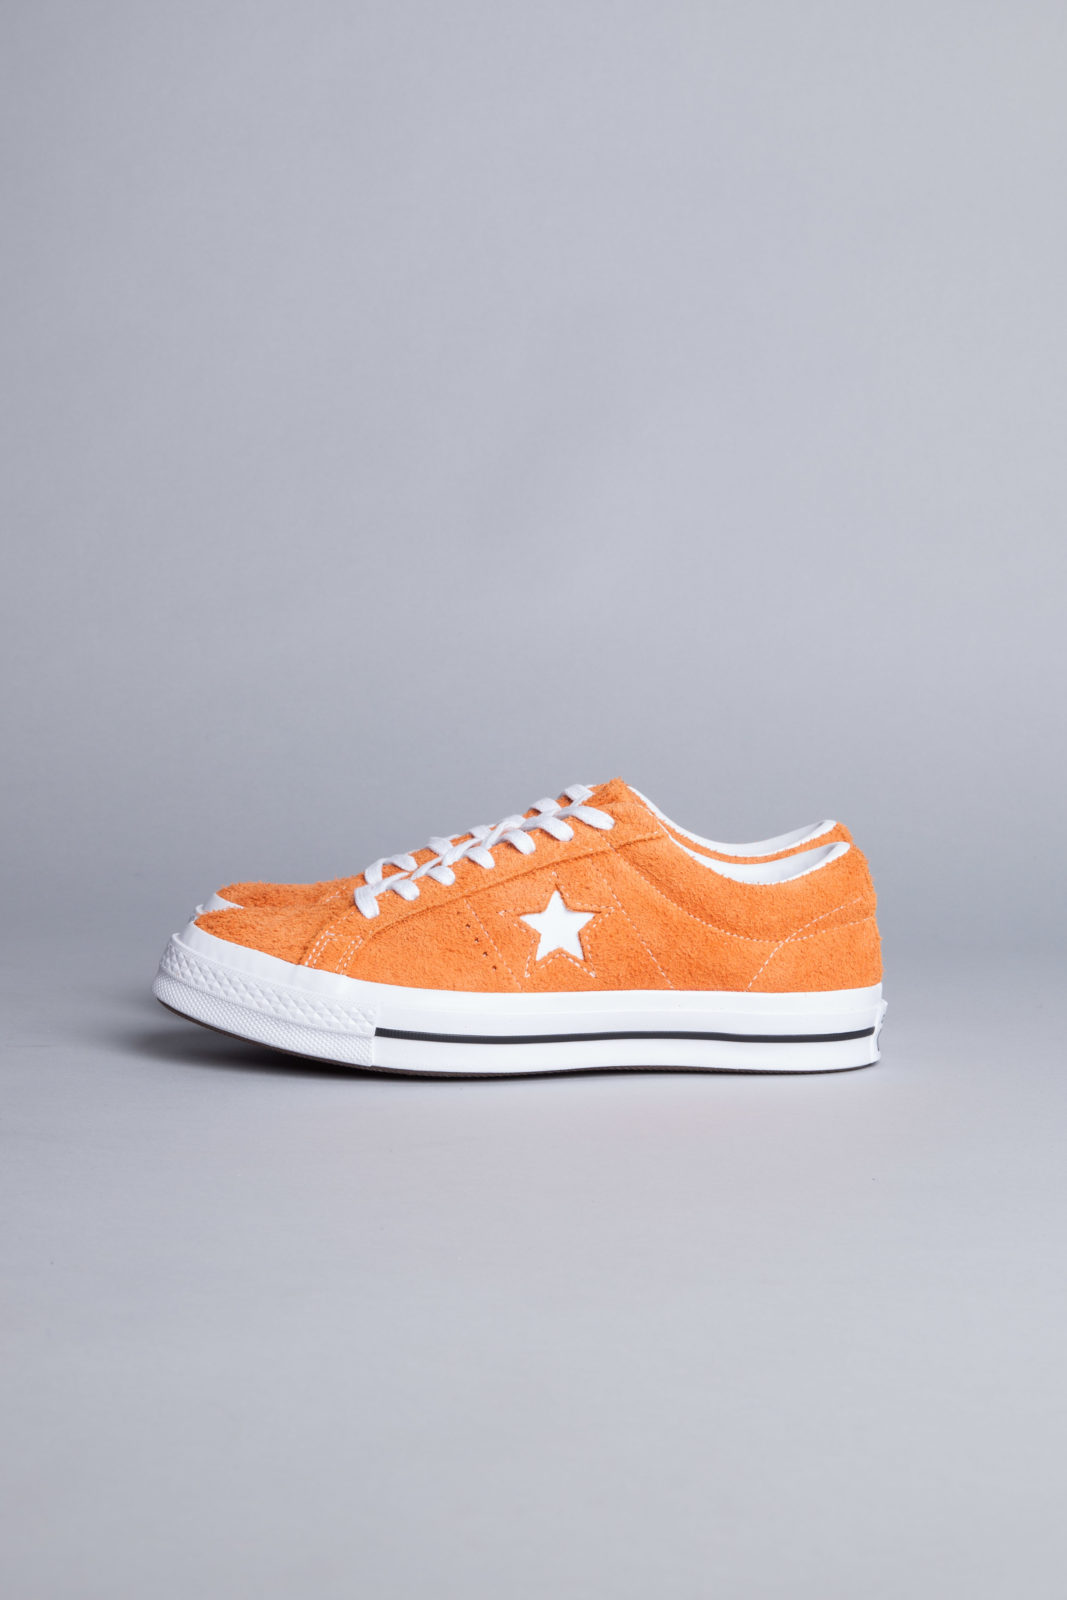 Converse One Star OX Bold Mandarin • Centreville Store 20008cccd